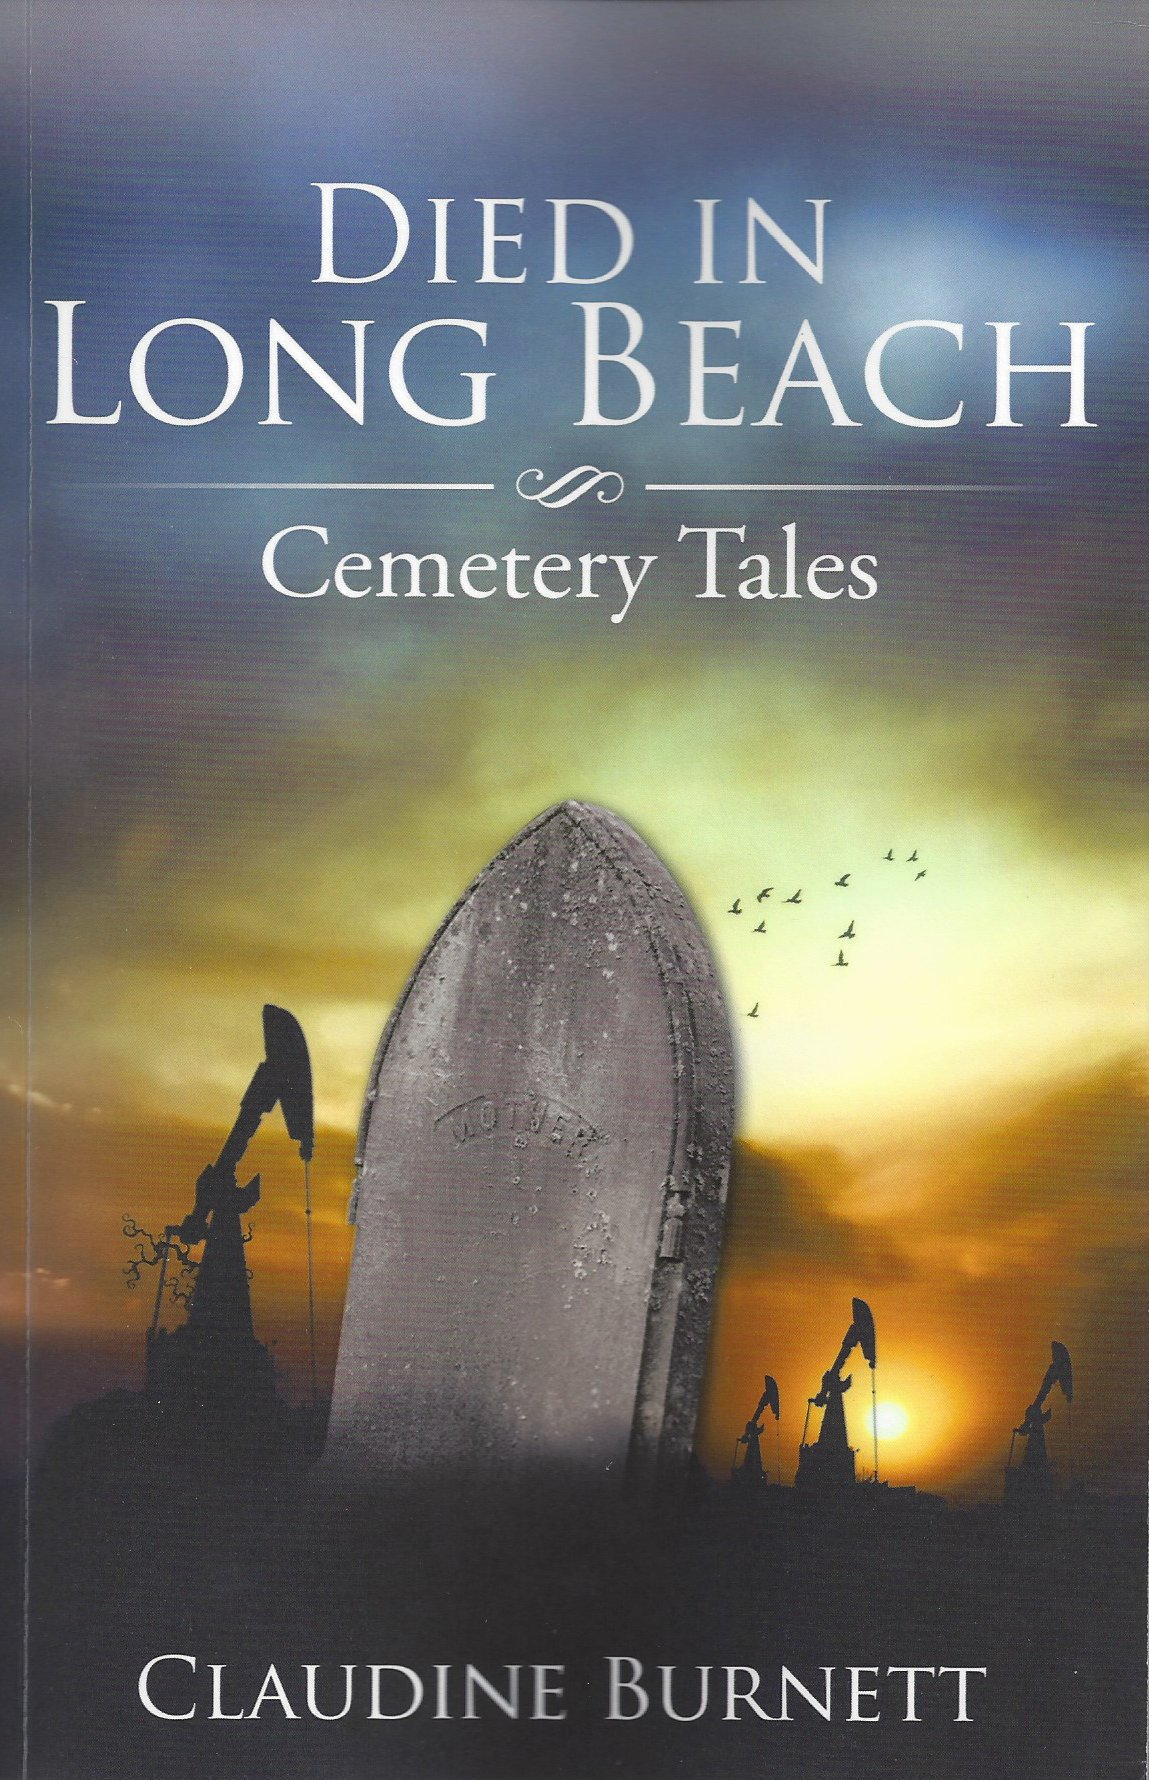 Died in long beach cemetery Tales by Claudine Burnett front